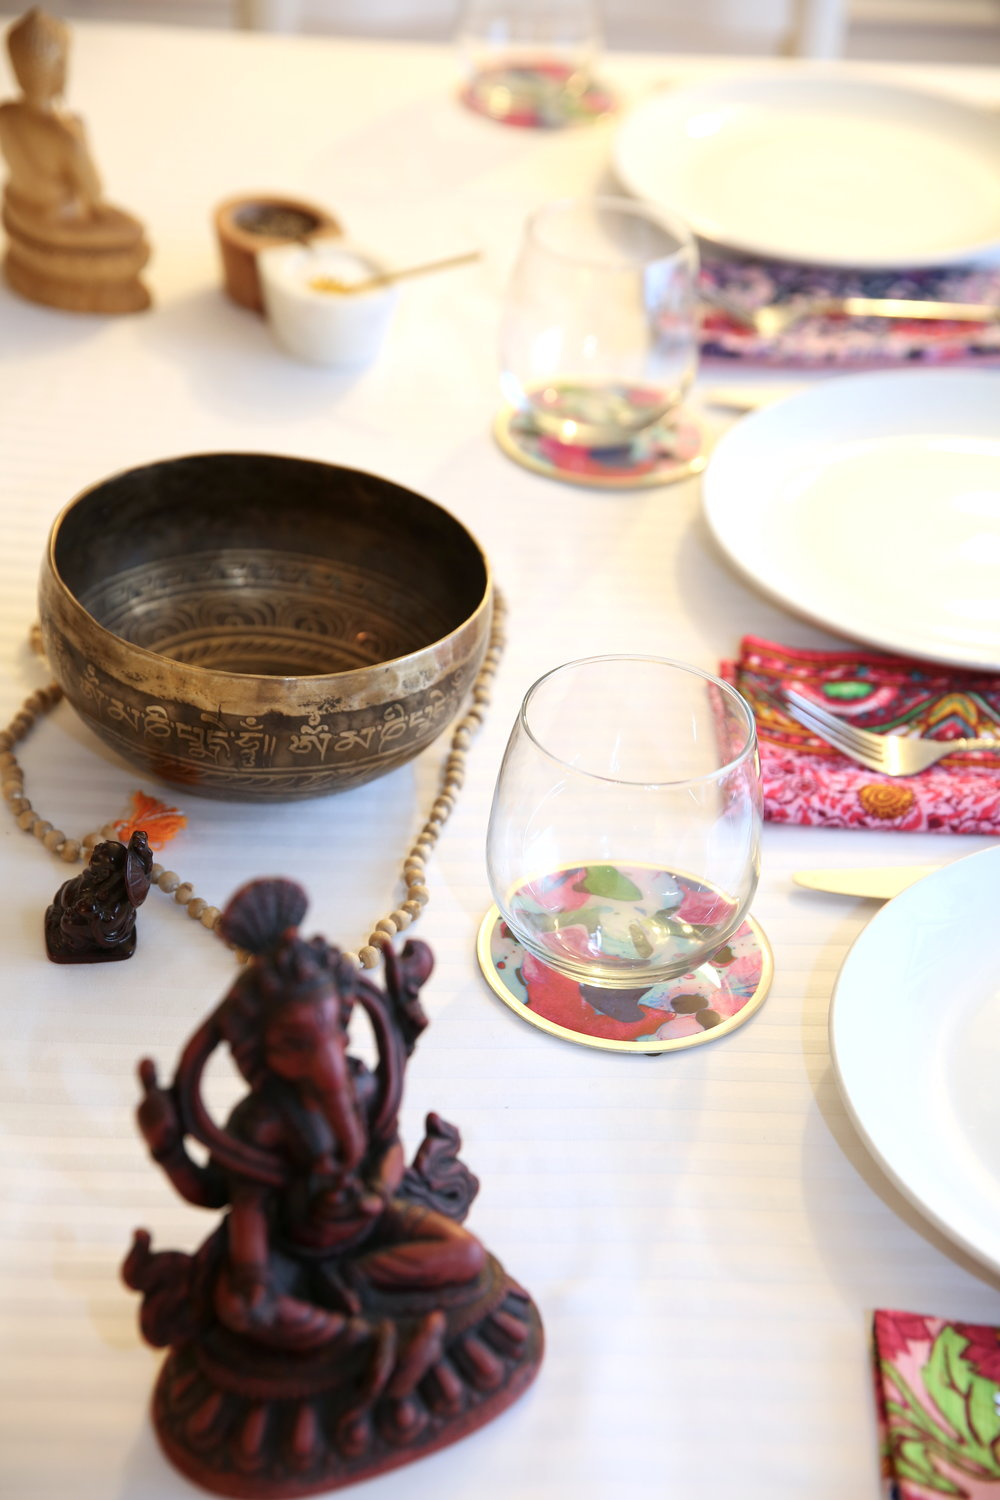 Healthy Meal Delivery in Boston Hosts Dinner Party in Nepal